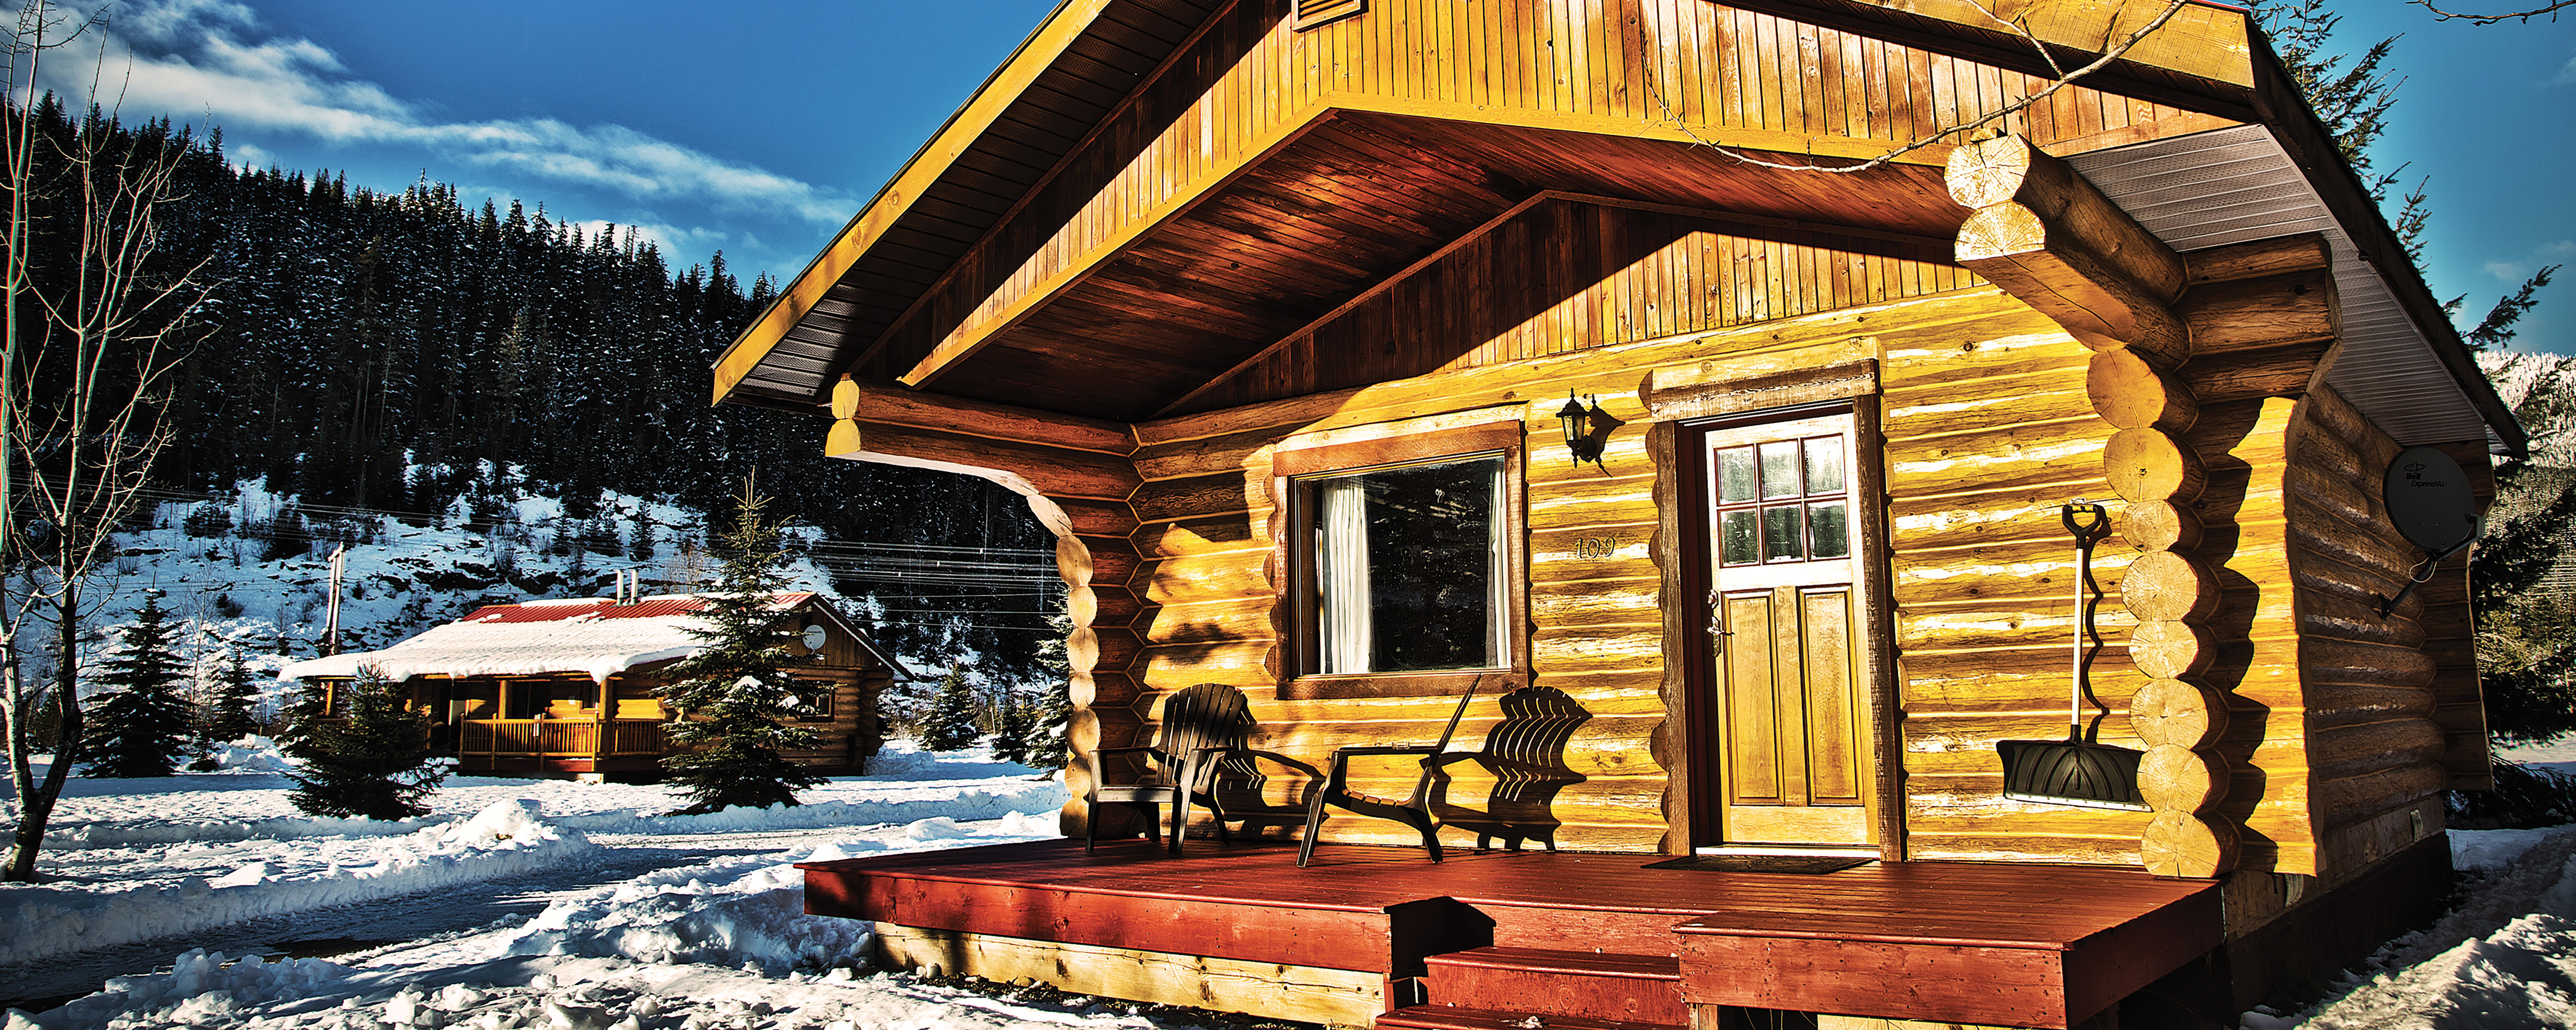 Great_canadian_tours_accommodation_cabin